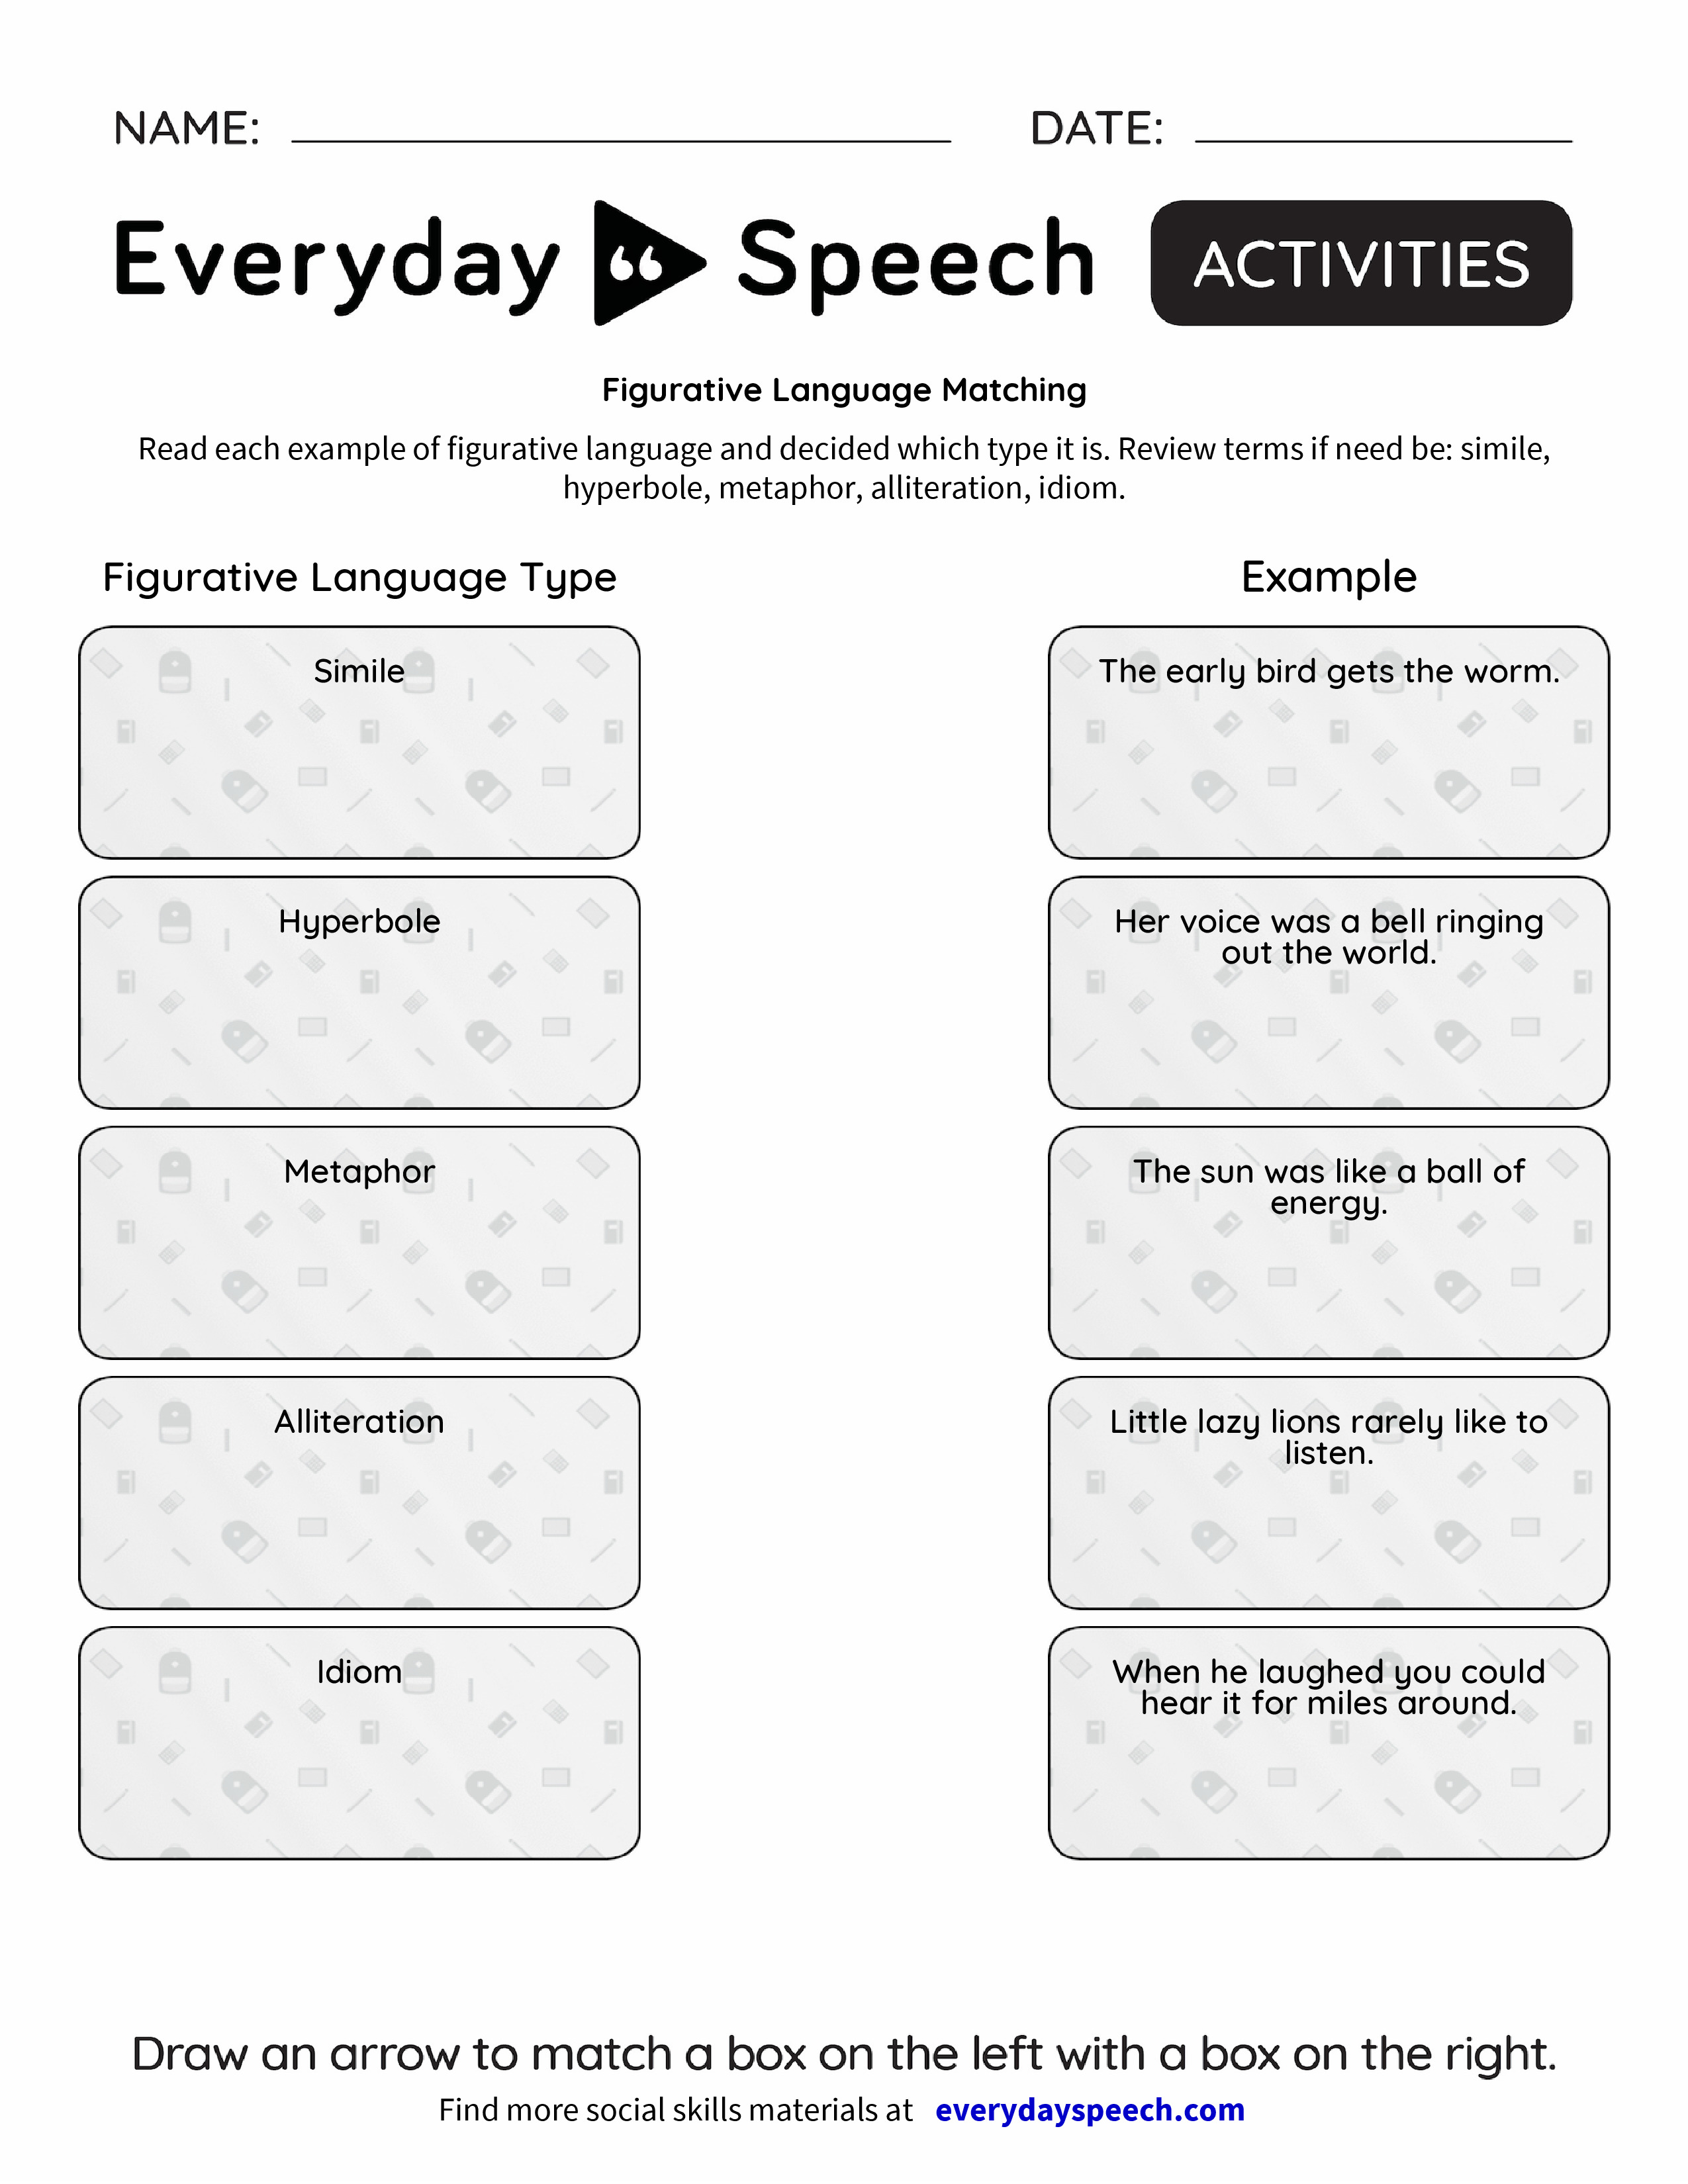 worksheet Middle School Language Arts Worksheets hd wallpapers english language arts worksheets middle school get free high quality school